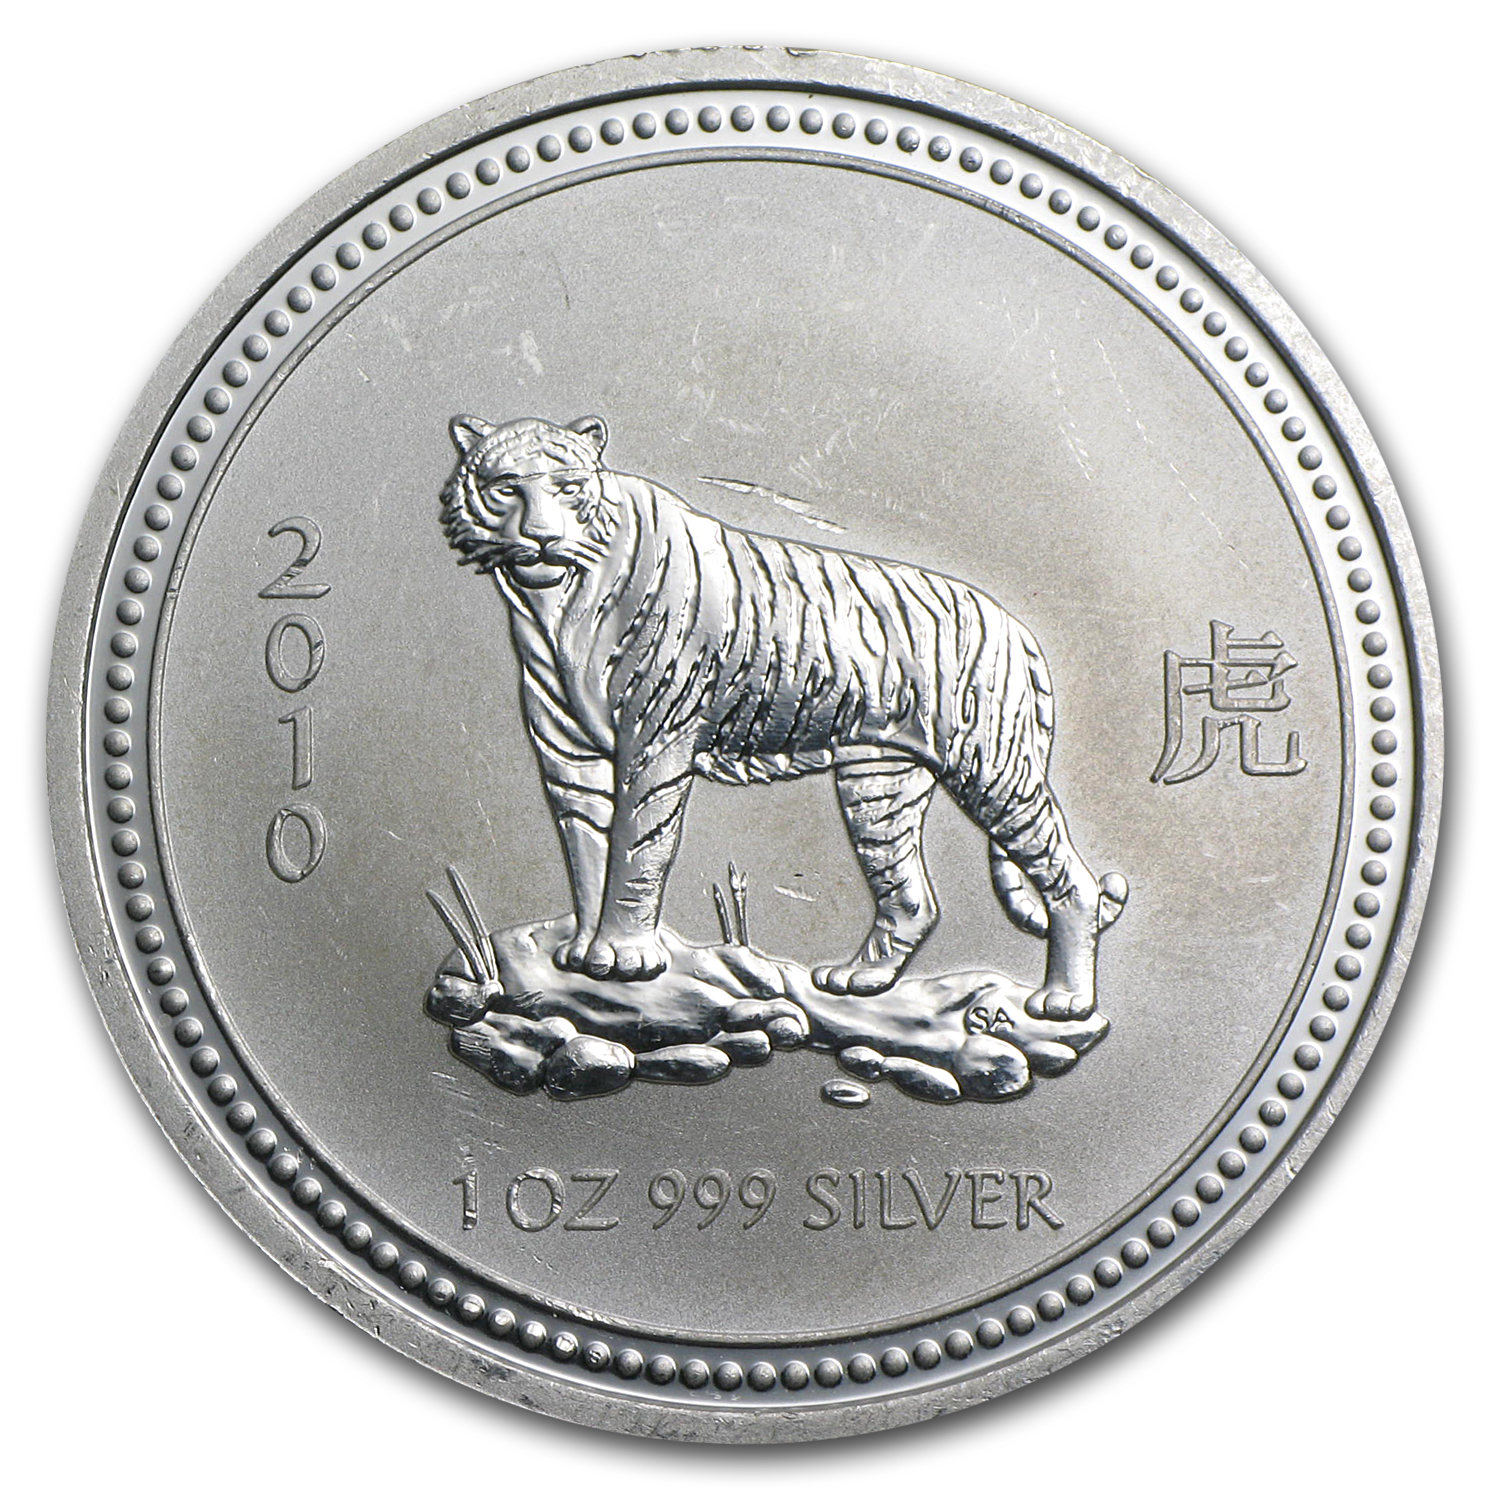 2010 1 oz Silver Lunar Year of the Tiger (Series I)(Abrasions)